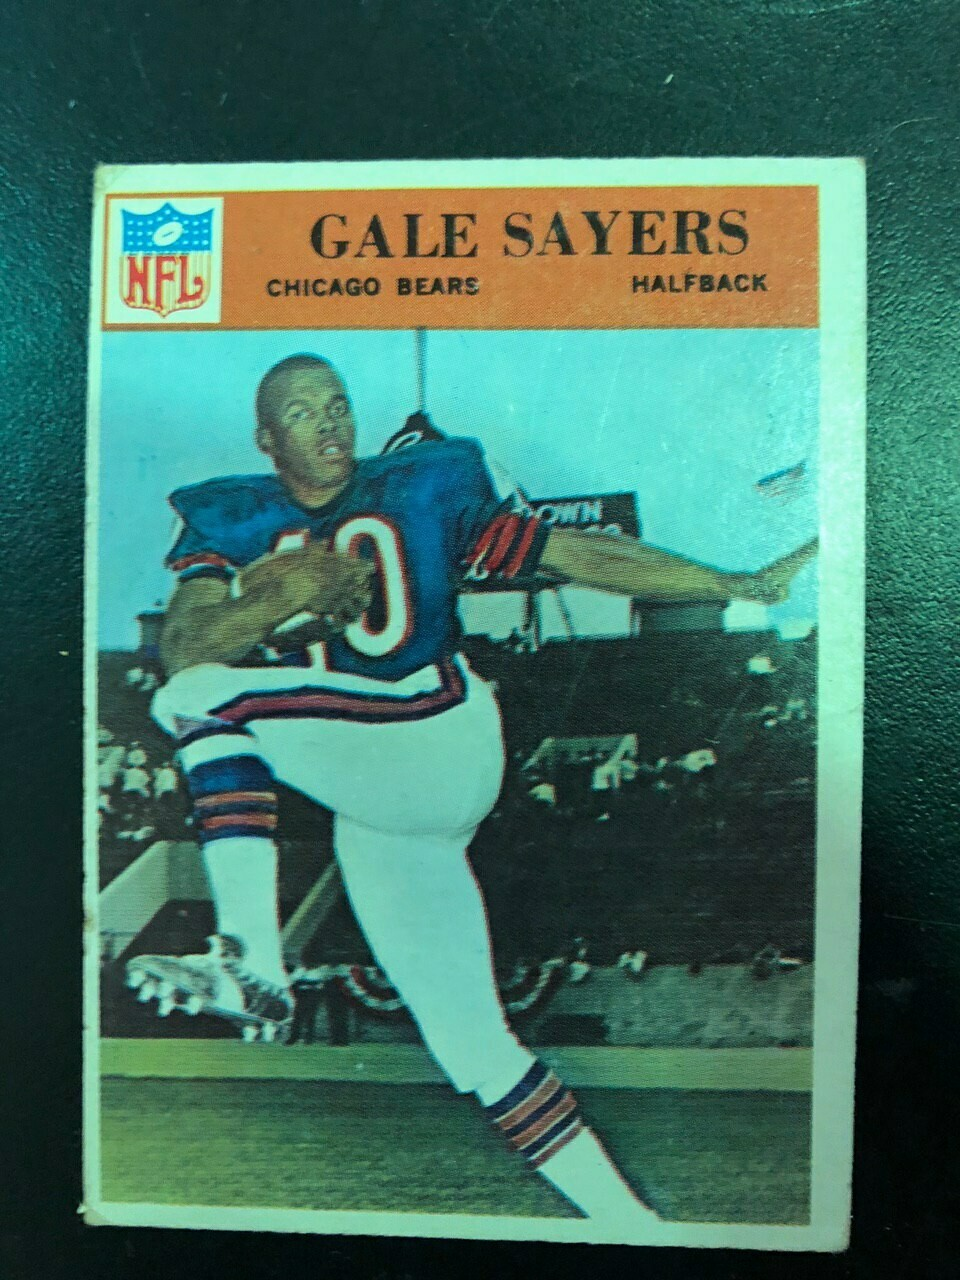 1966 Philadelphia #38 Gale Sayers rookie, $95